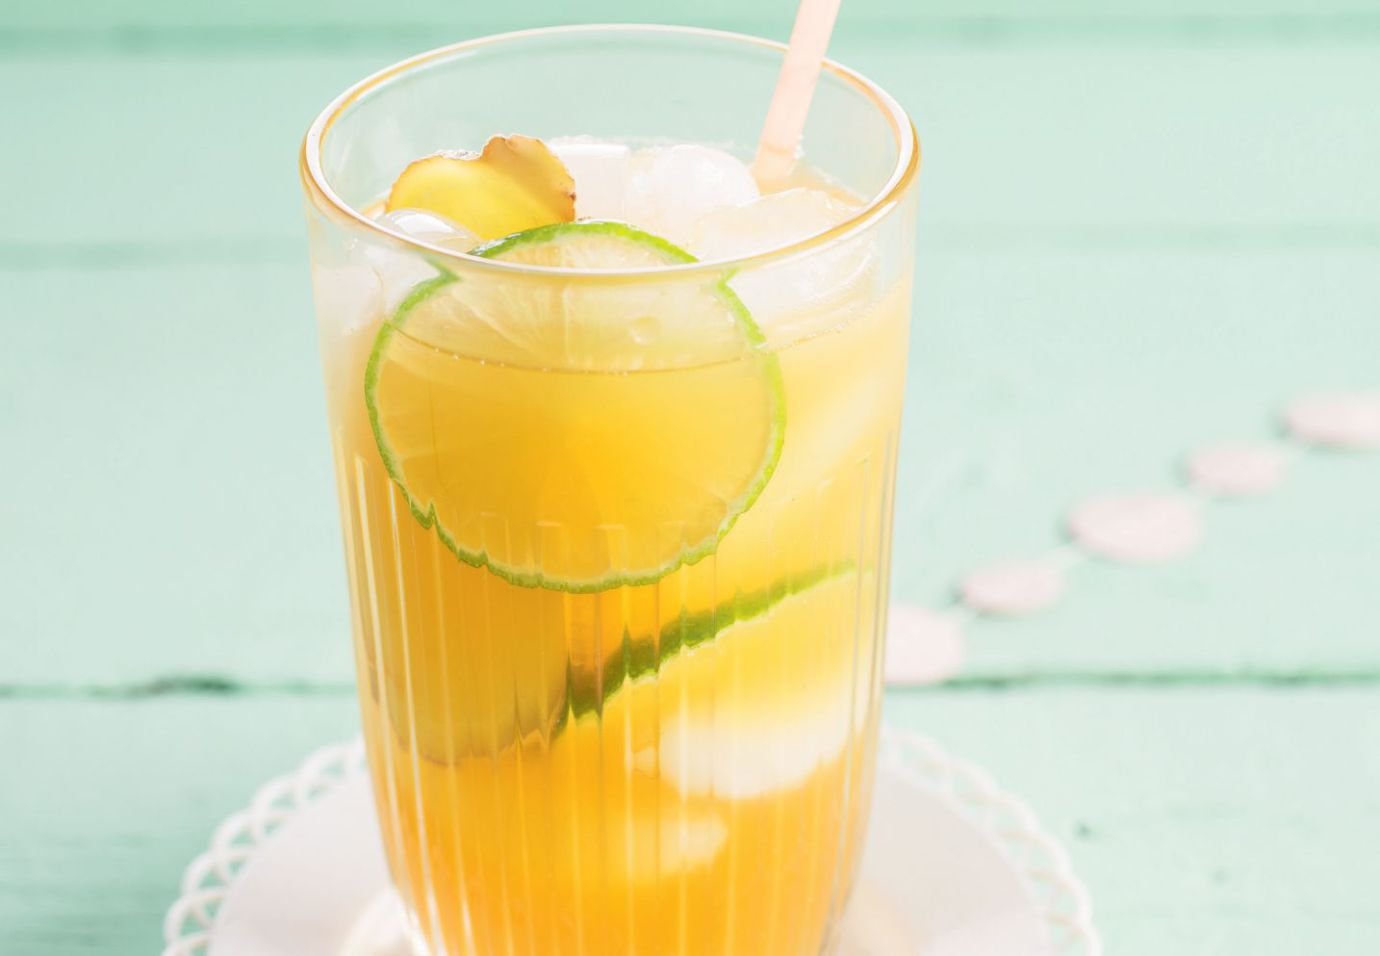 iced-tea-home-door-sofie-dumont